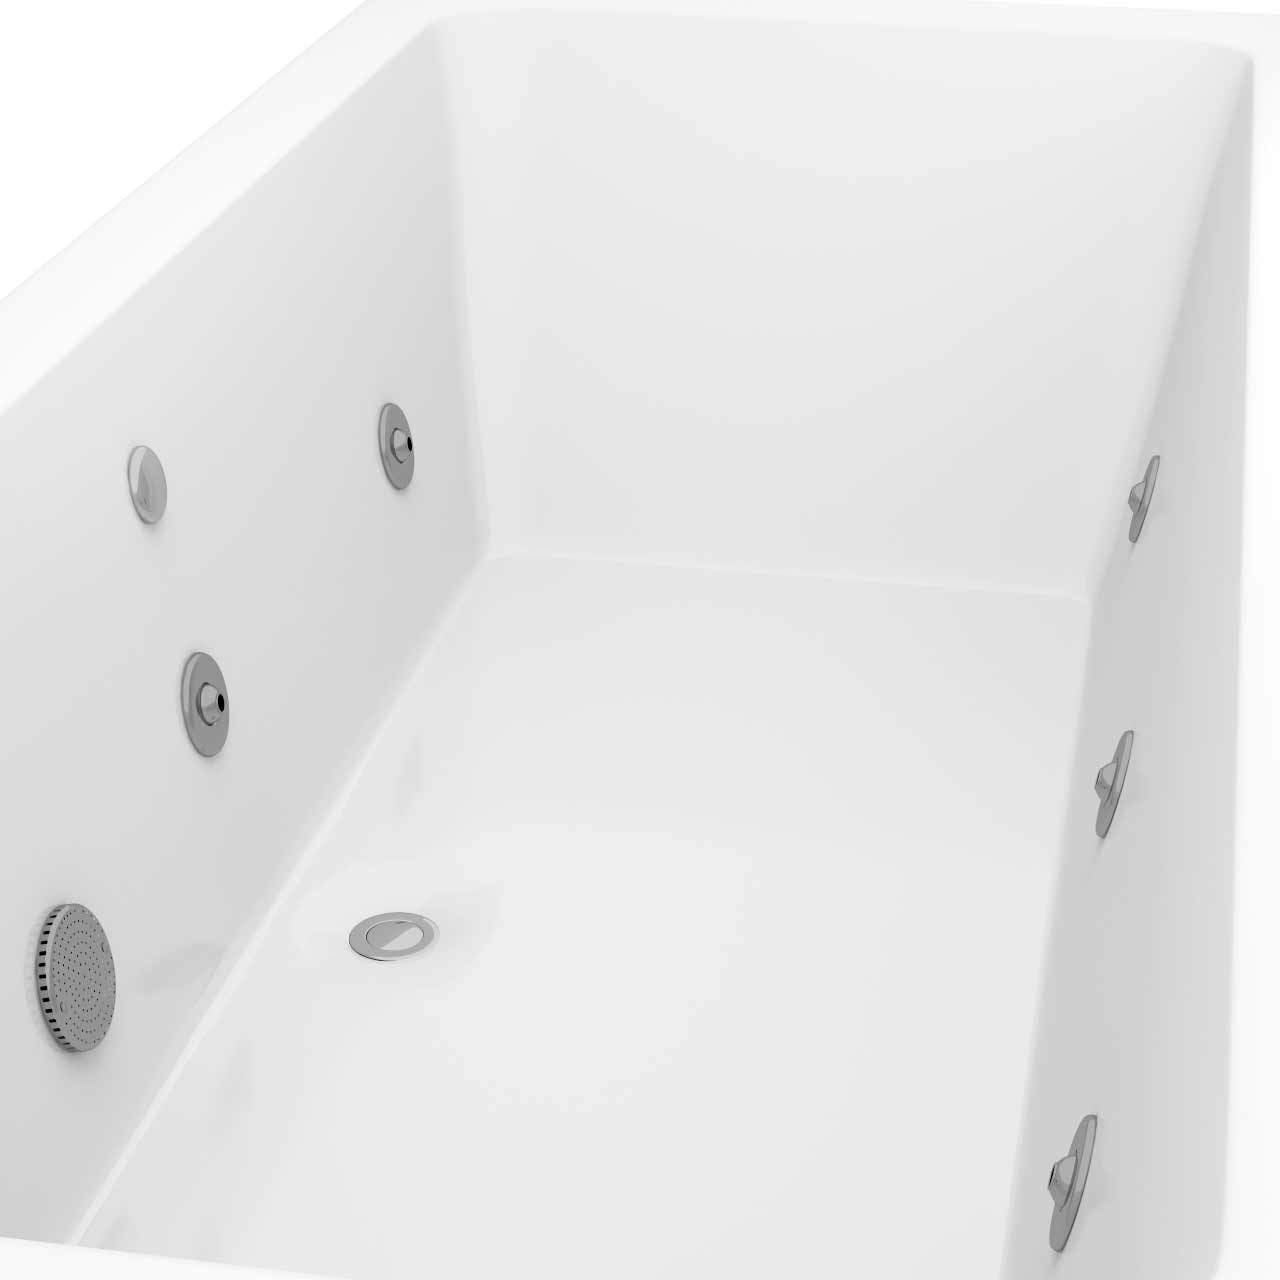 Square Centre Tap 6 Jet Chrome V-Tec Whirlpool Bath 1800x800mm